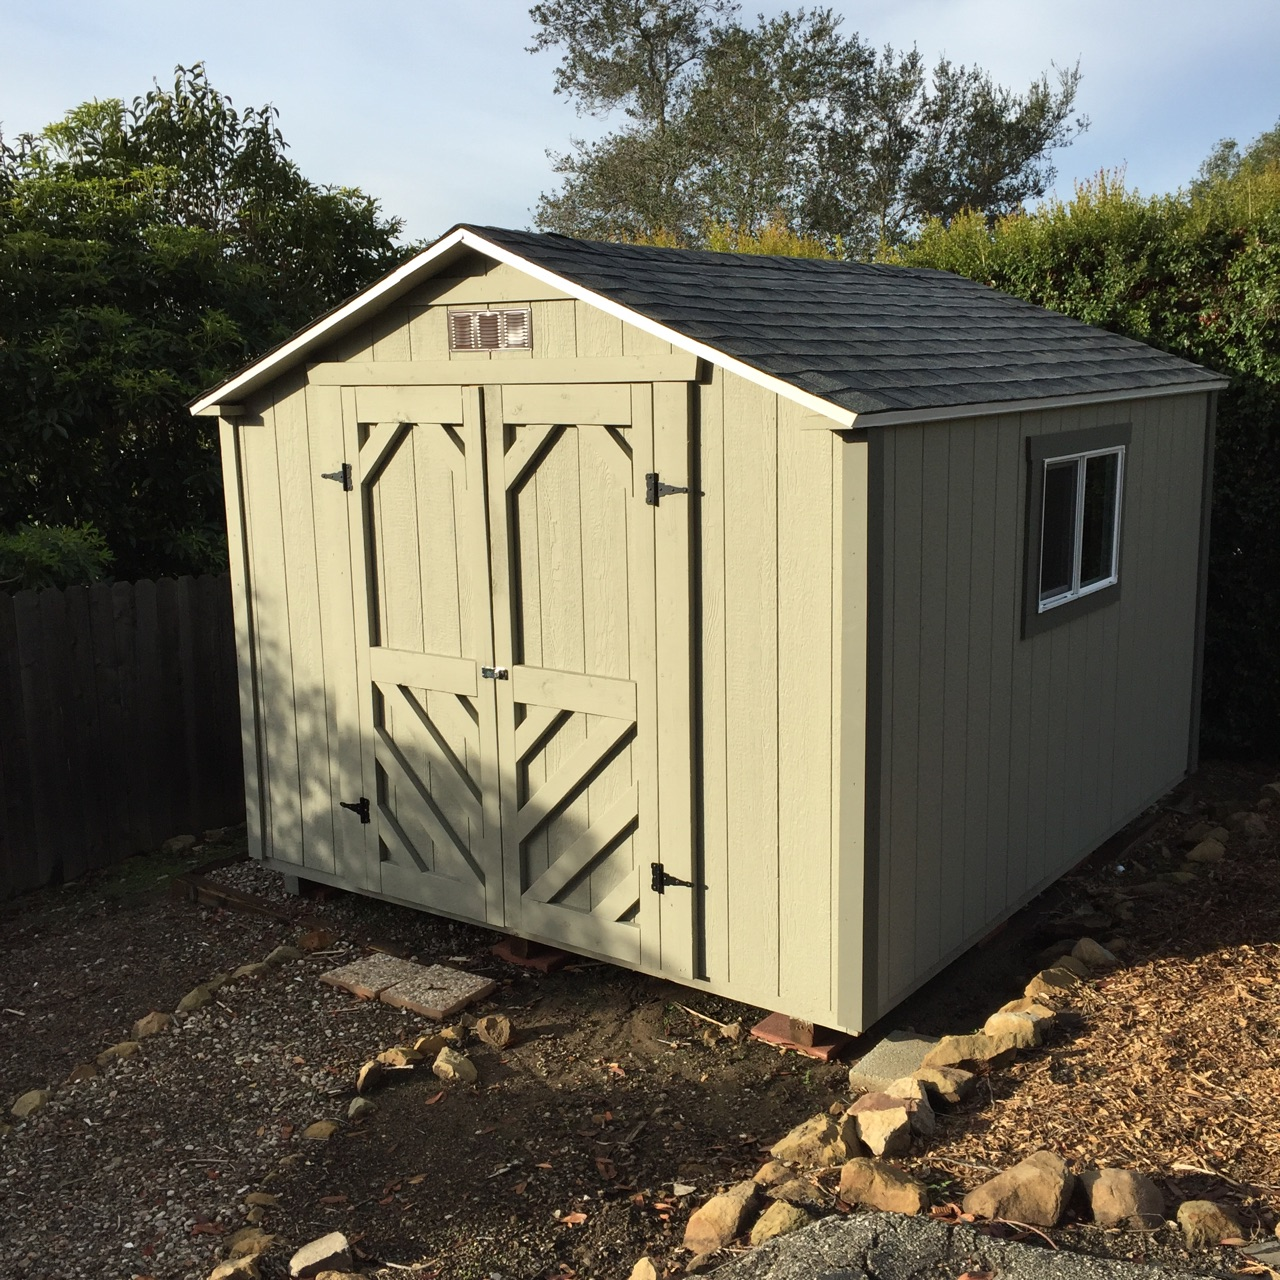 10x12' Storage Shed in Santa Barbara